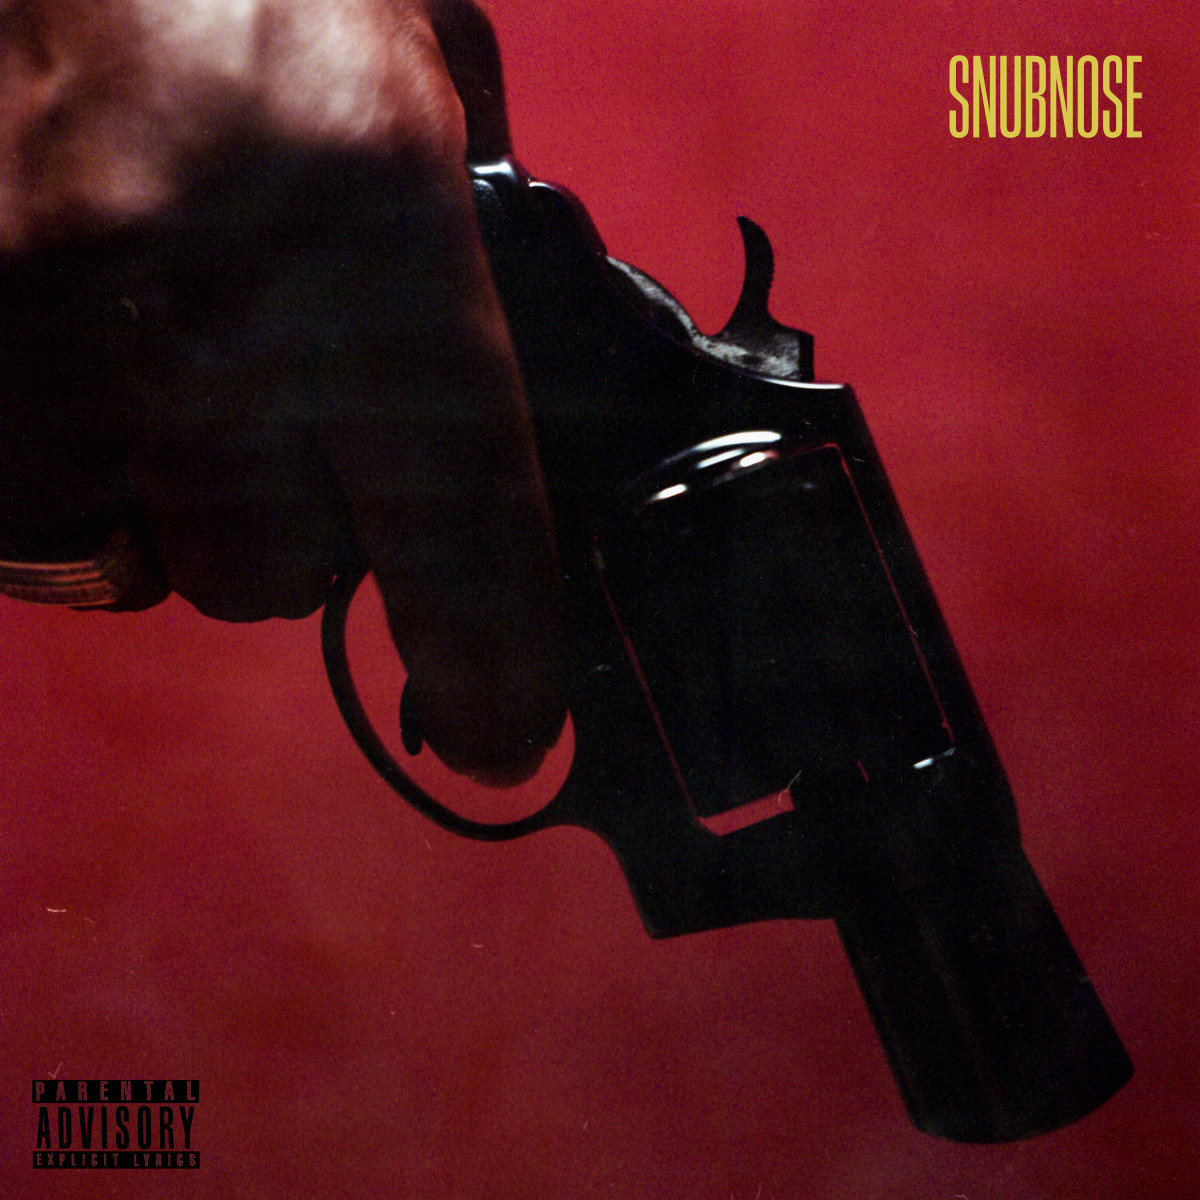 snubnose-album-by-grip-cover